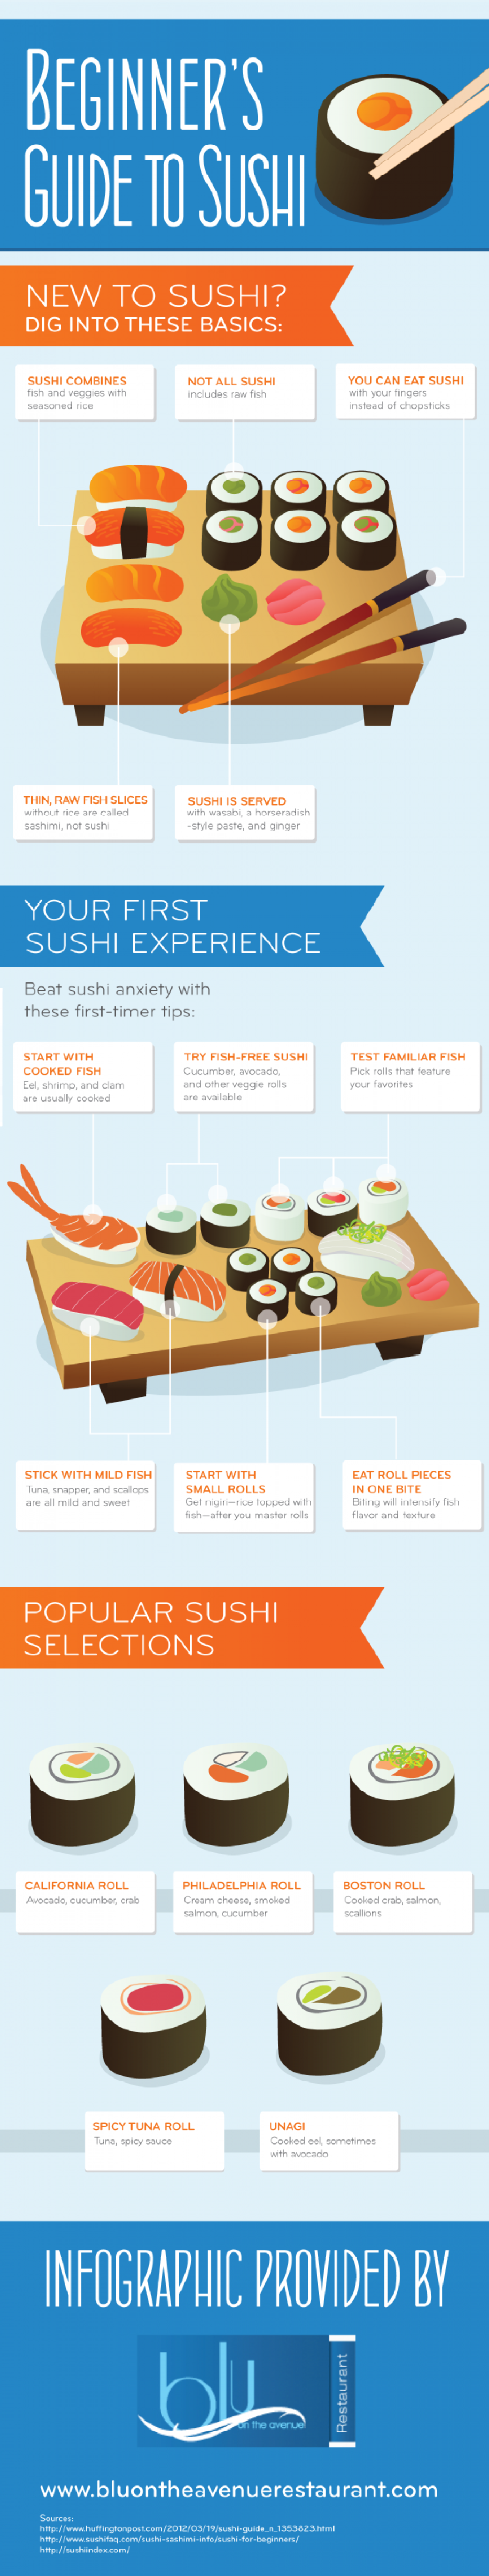 Beginner's Guide to Sushi Infographic